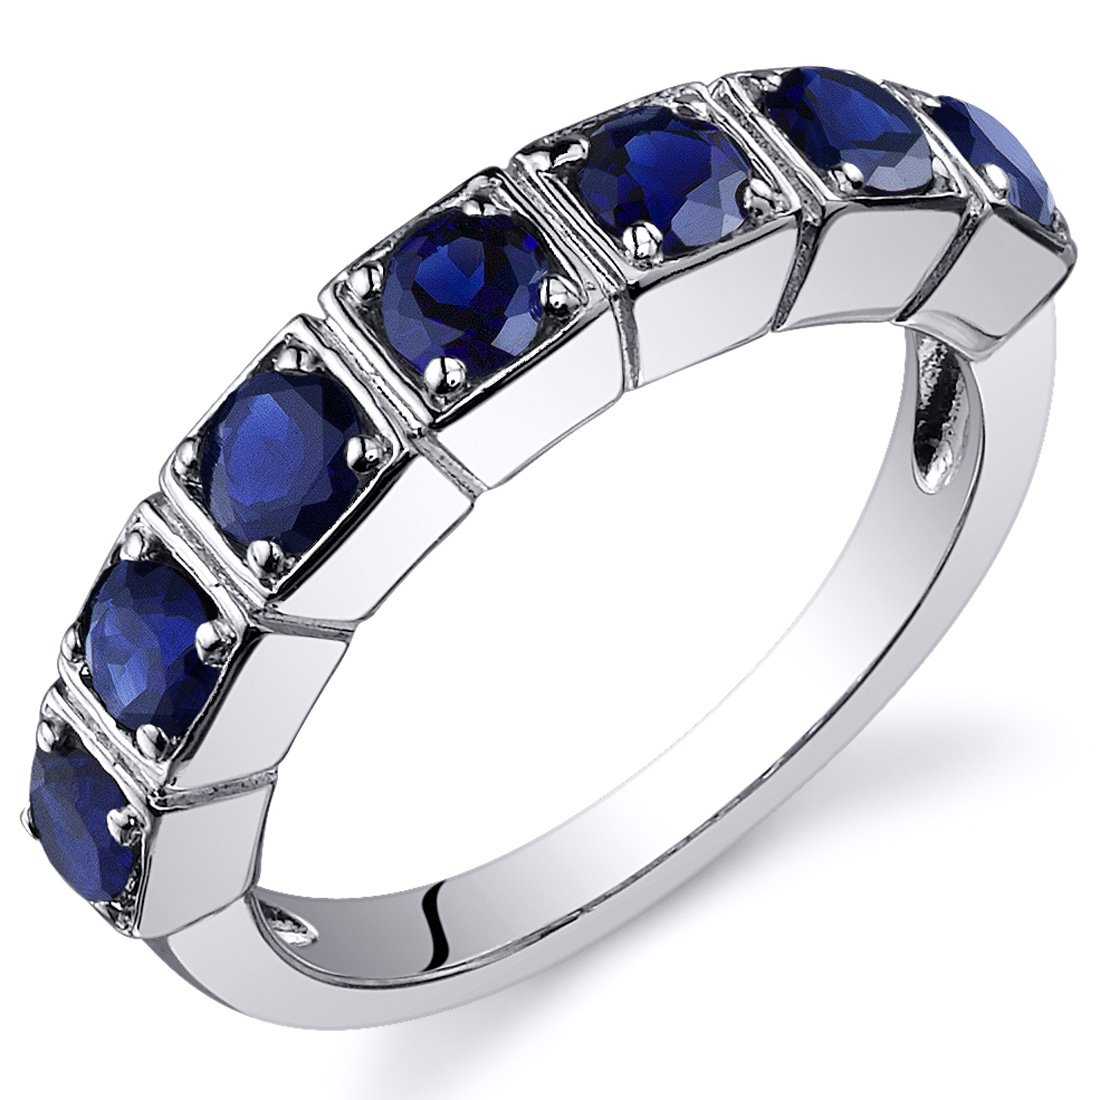 Created Sapphire Ring Sterling Silver Rhodium Nickel Finish 7 Stone Band Sizes 5 to 9